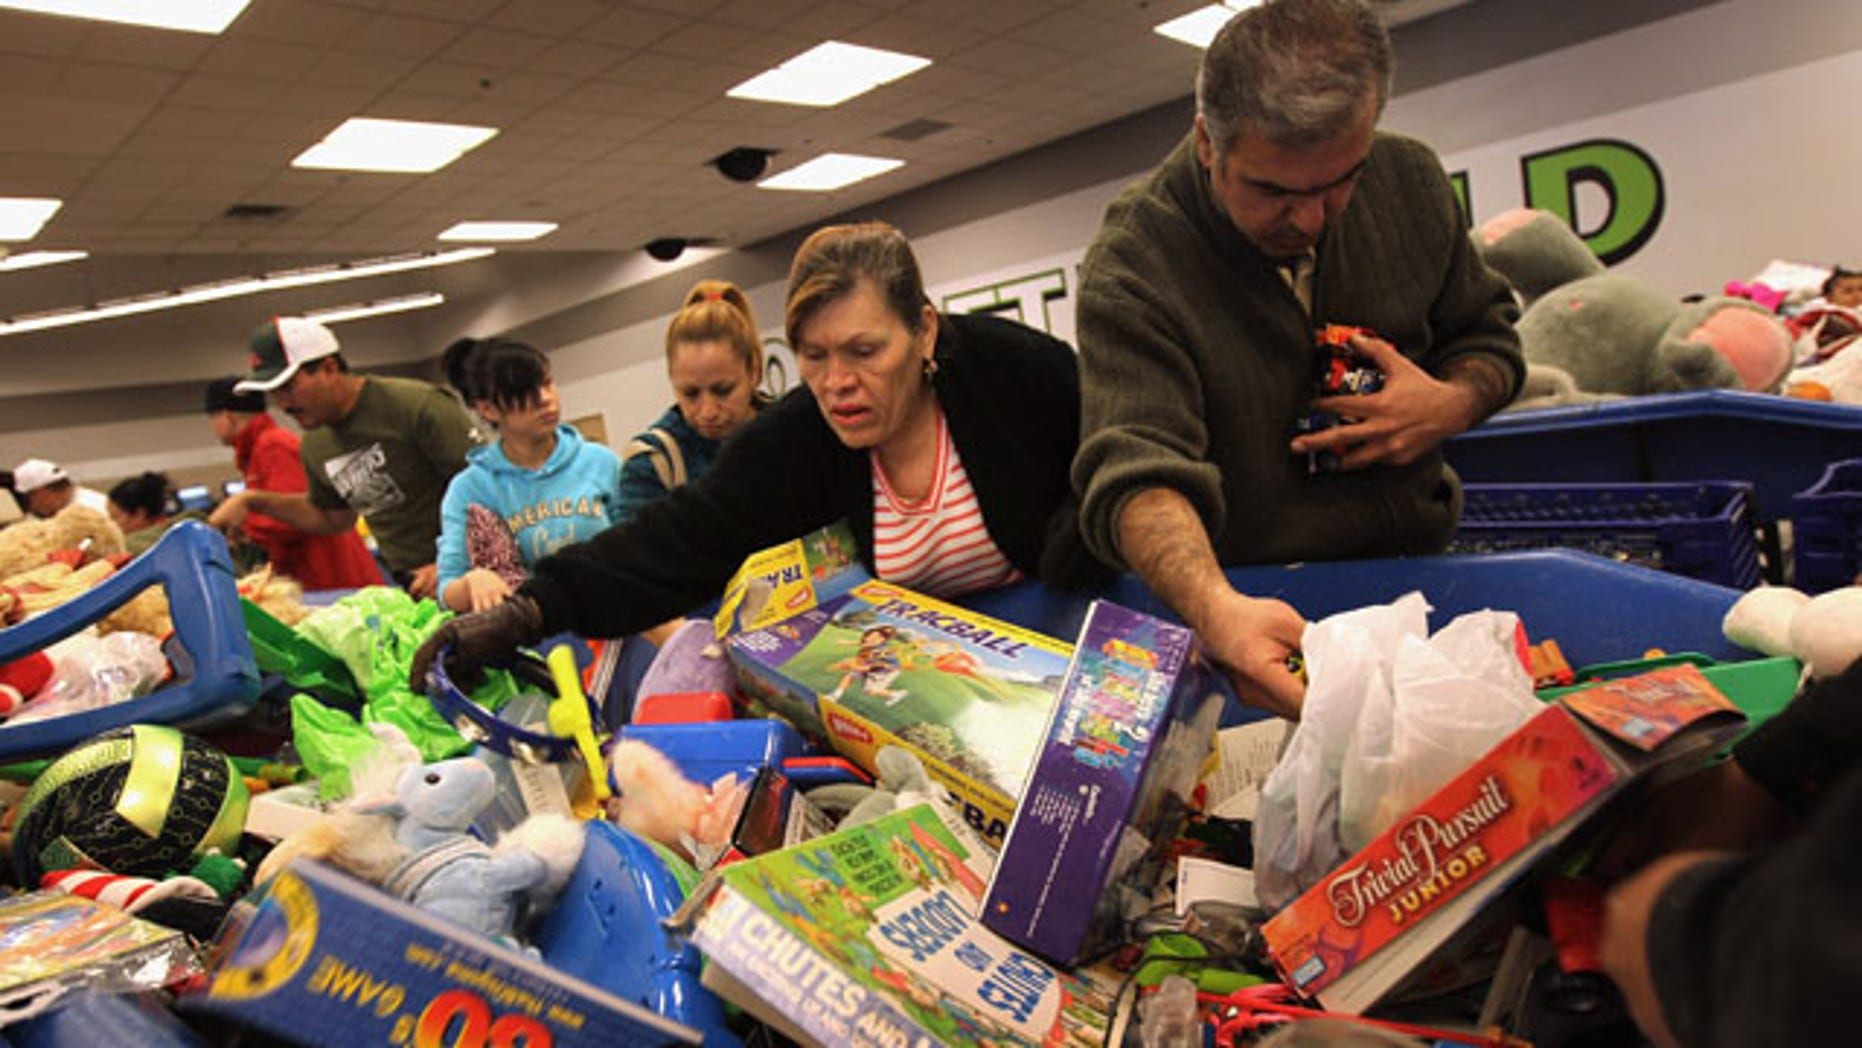 DENVER - NOVEMBER 26:  Low-income shoppers search bins for toys at a Goodwill thrift store on Black Friday, November 26, 2010 in Denver, Colorado. People packed the thrift store on the busiest shopping day of the year, buying toys and clothes in bulk for as cheap as 59 cents a pound.  (Photo by John Moore/Getty Images)